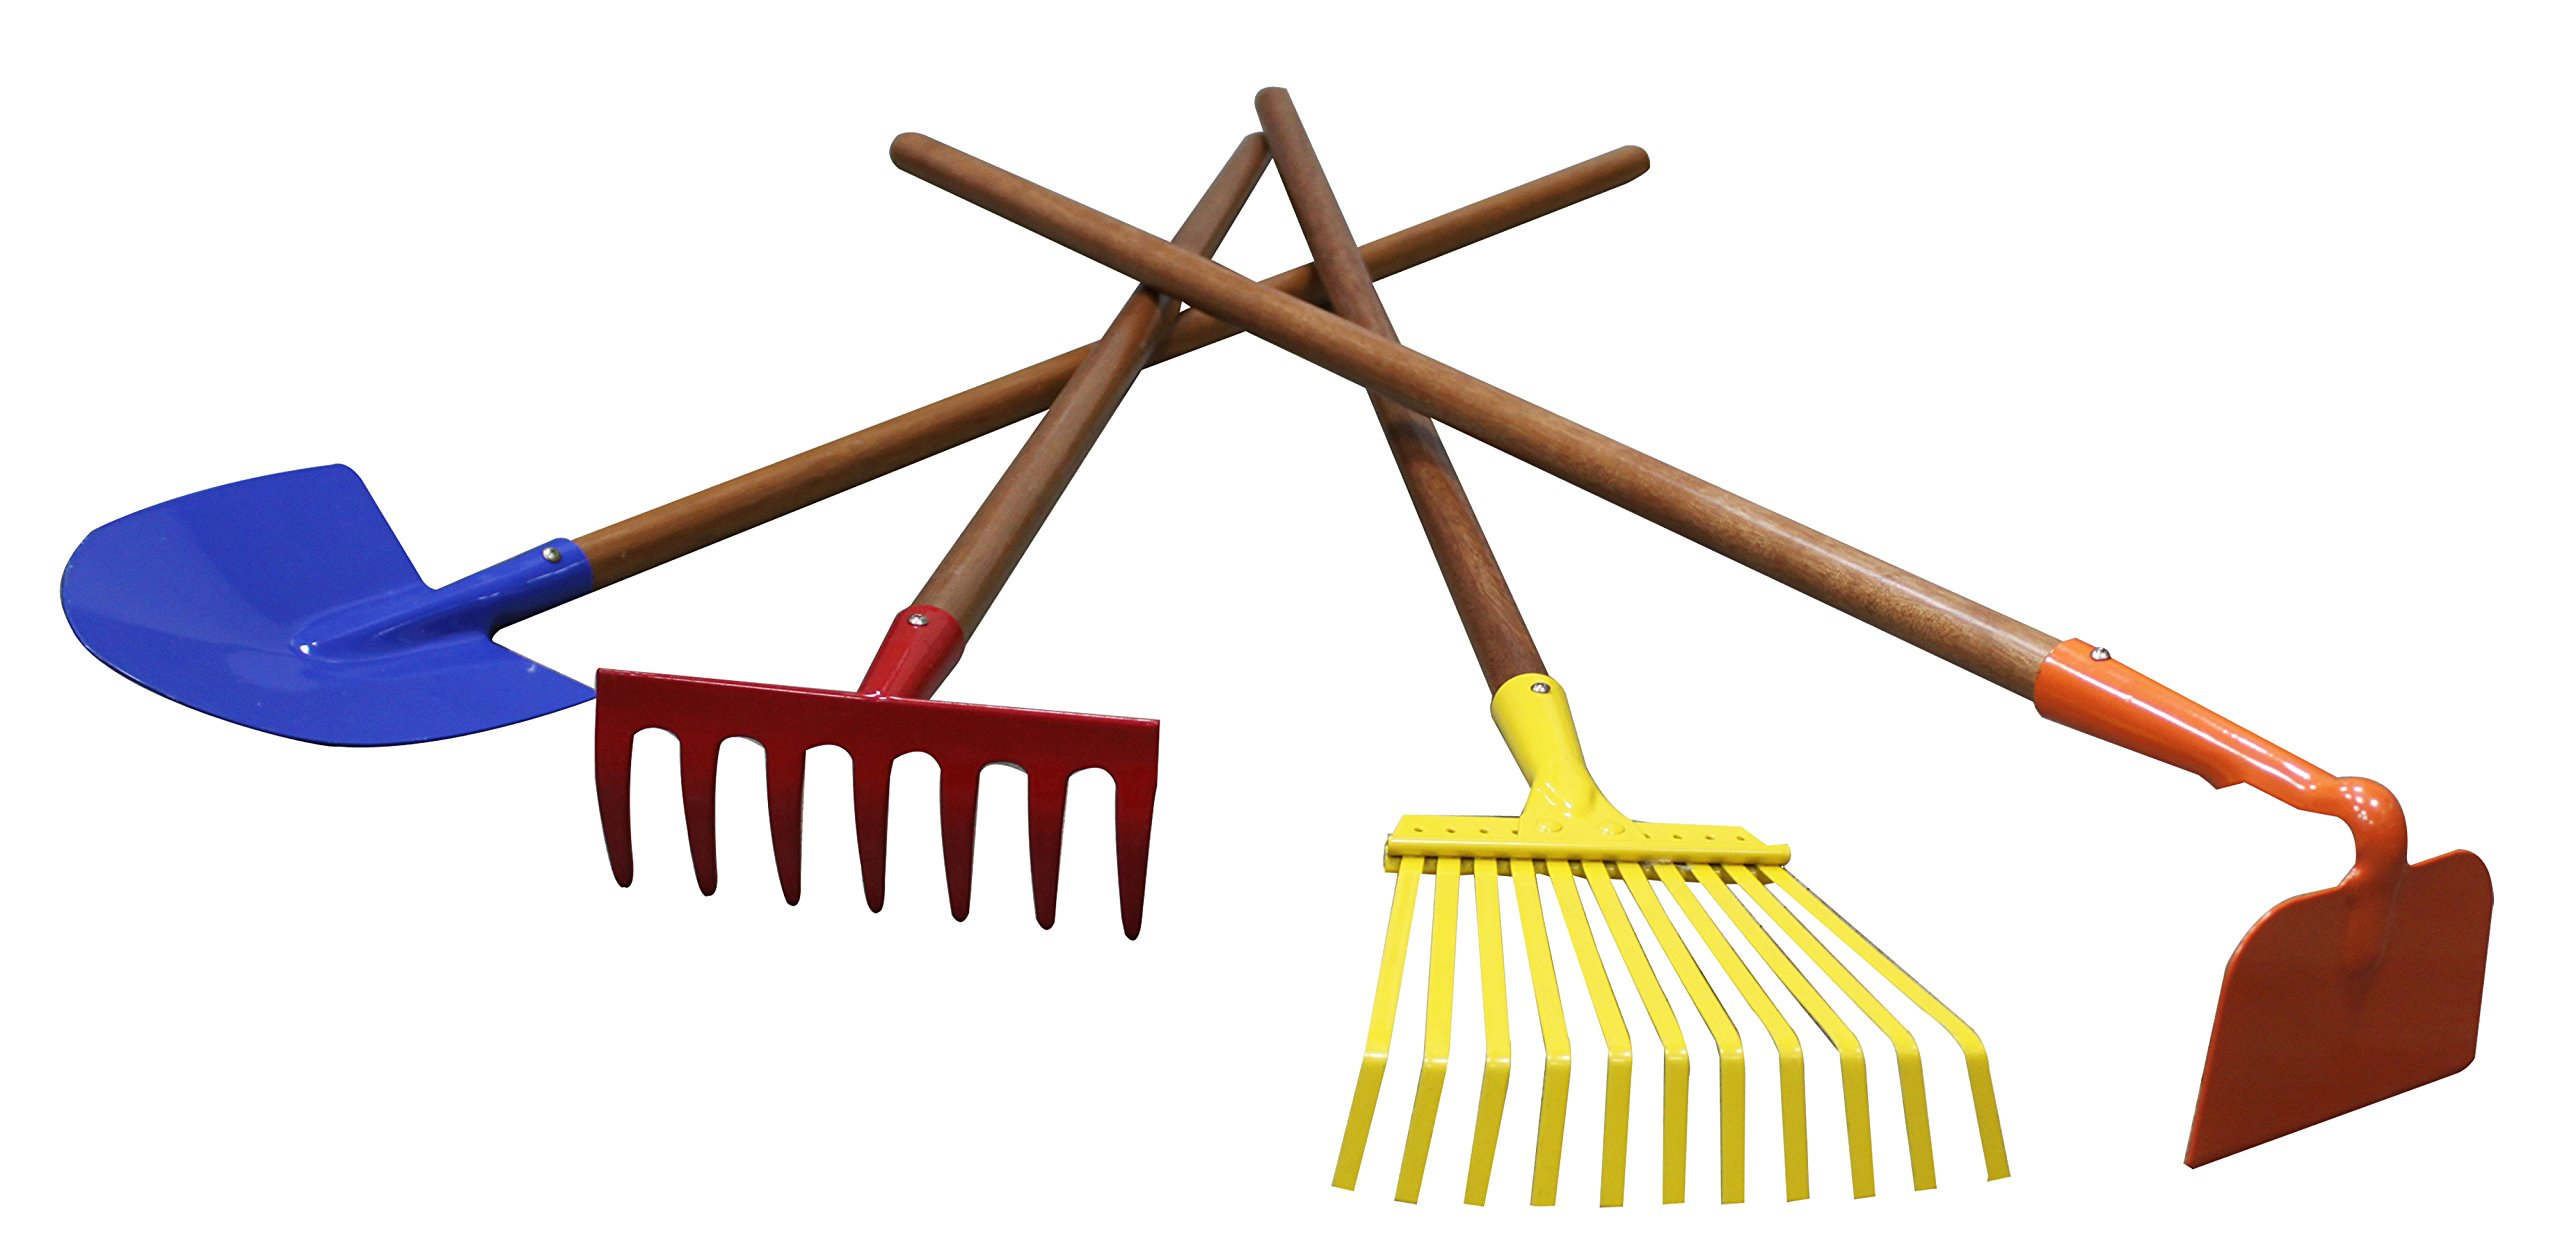 SPAI Kids Garden Tools Set, 7/8'' x 30''- Rake, Spade, Hoe and Leaf Rake, 4-Piece